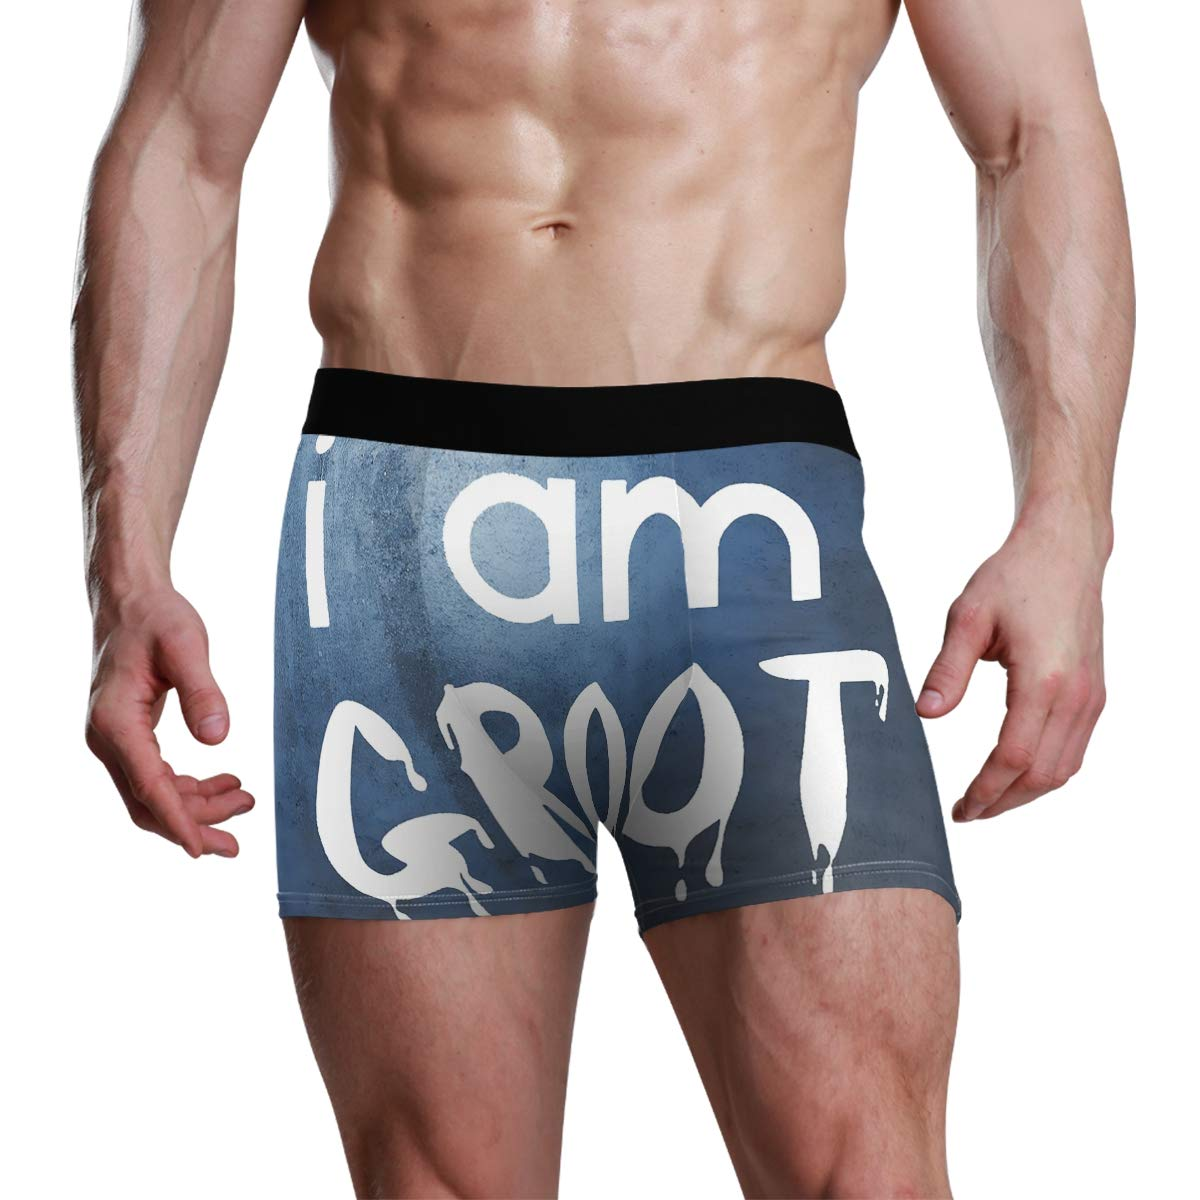 I Am Groot Mens Boxer Briefs Underwear Comfortable Breathable Tagless Short Leg Boxers Brief